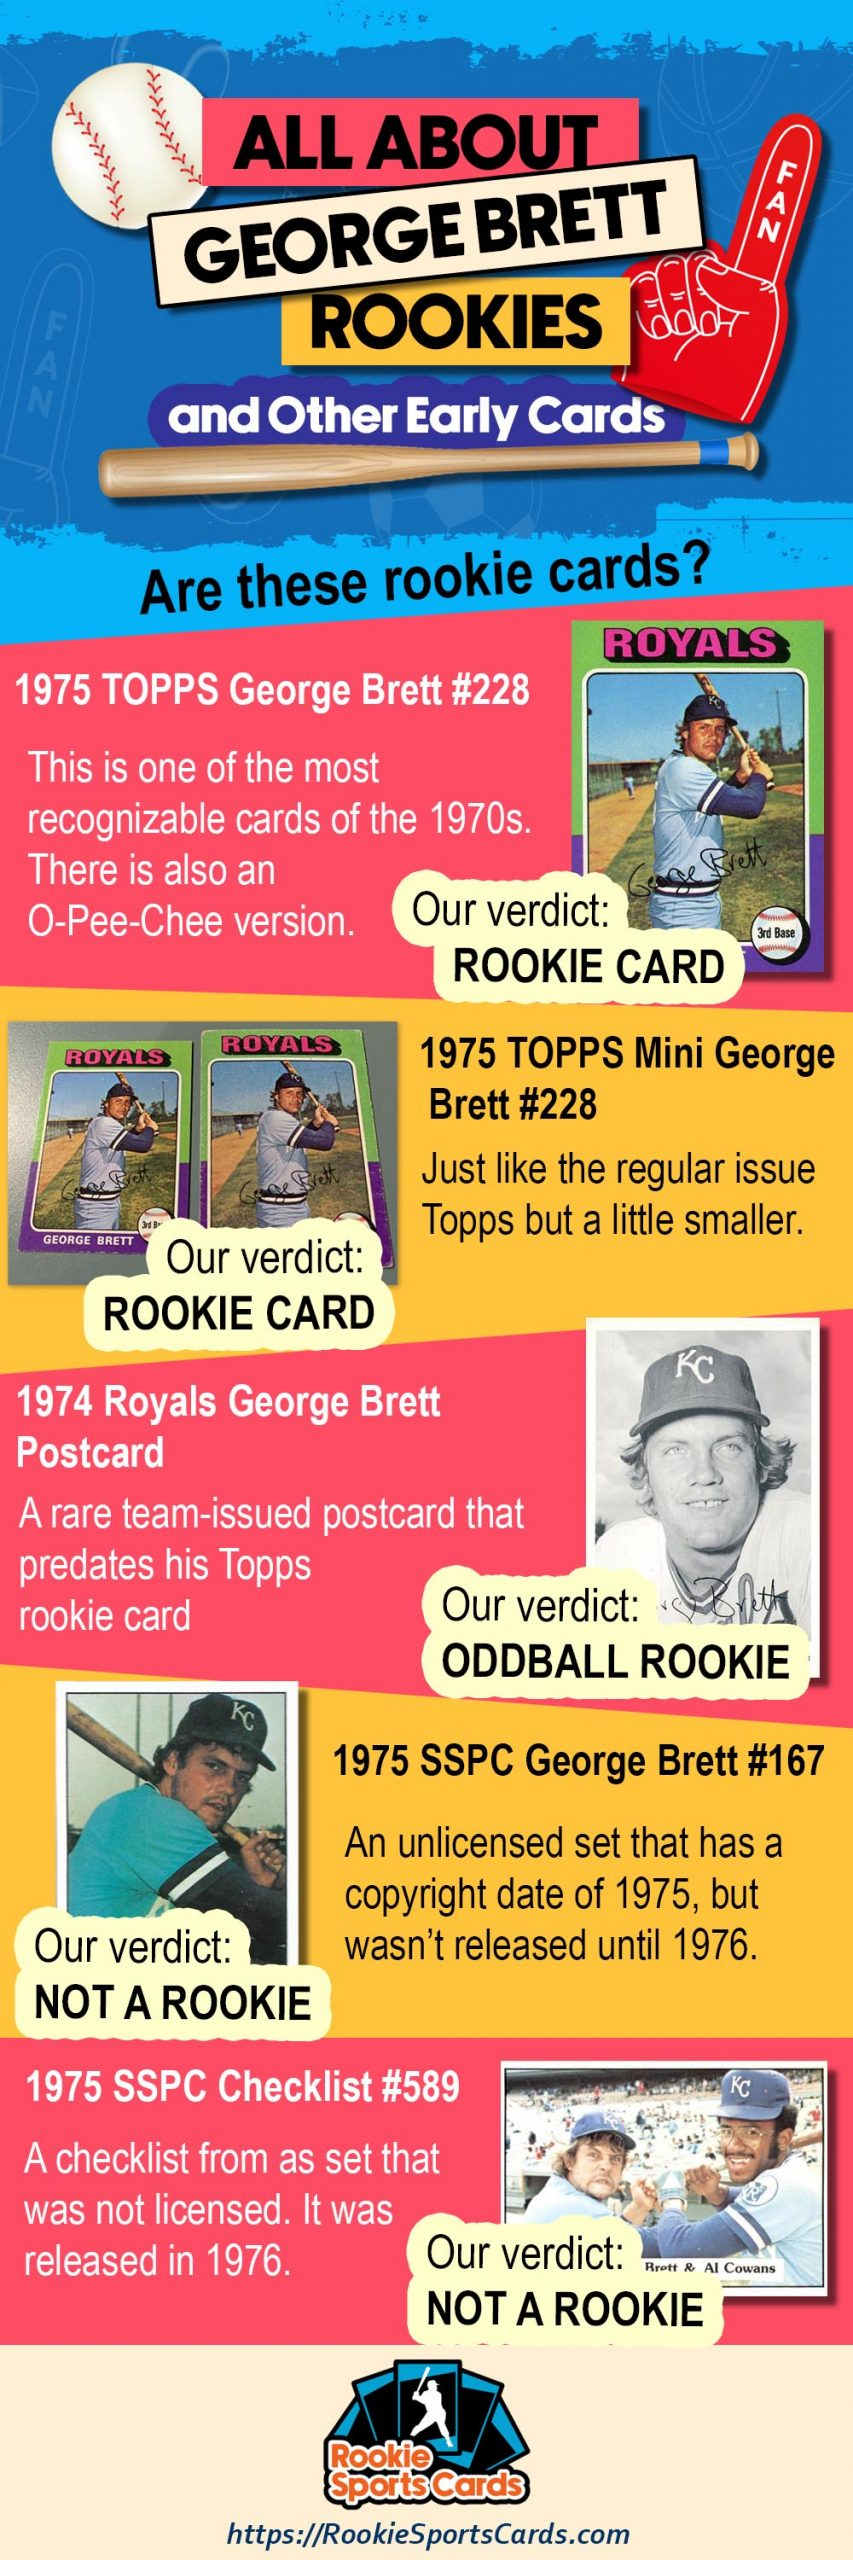 George Brett Rookie Cards Infographic